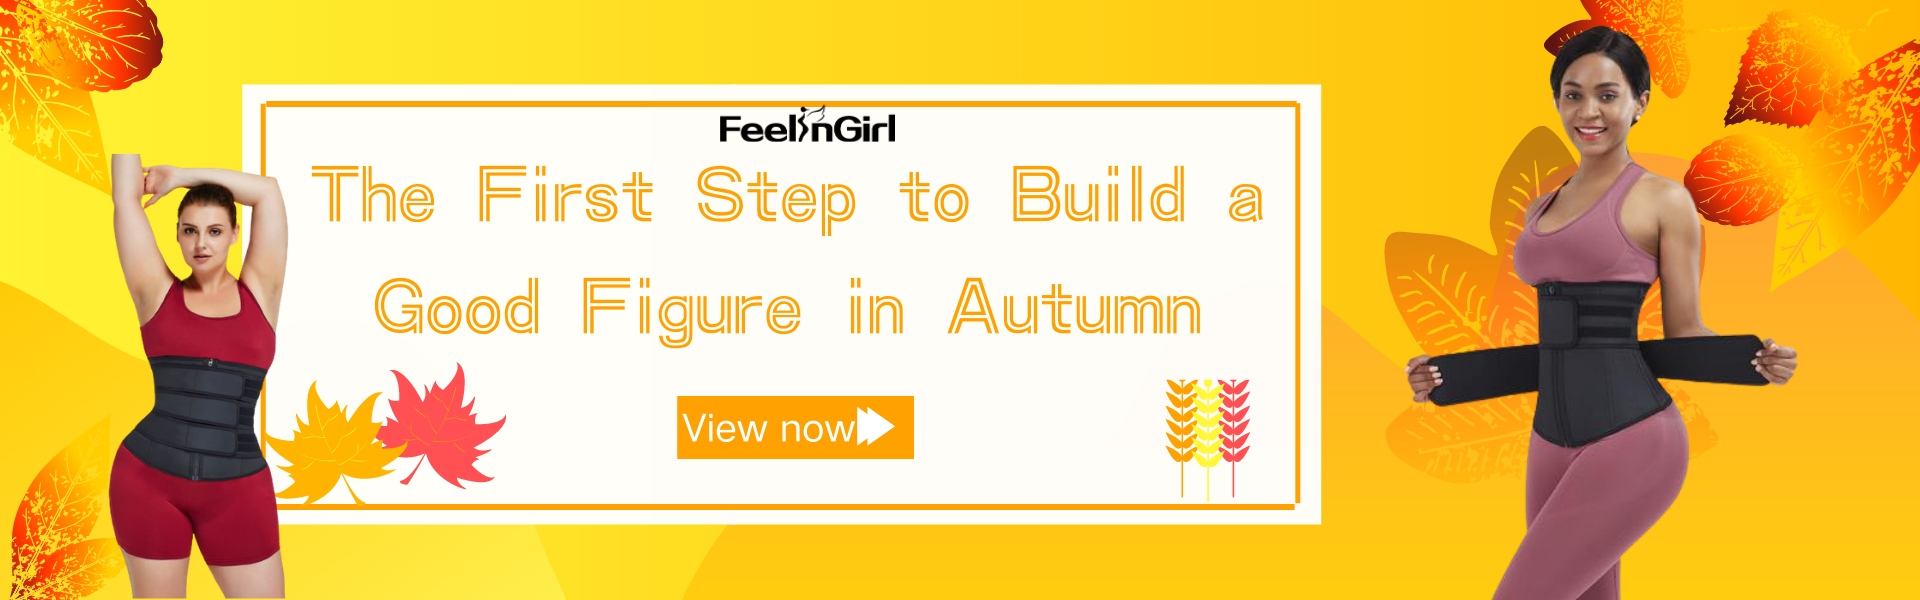 The First Step to Build a Good Figure in Autumn